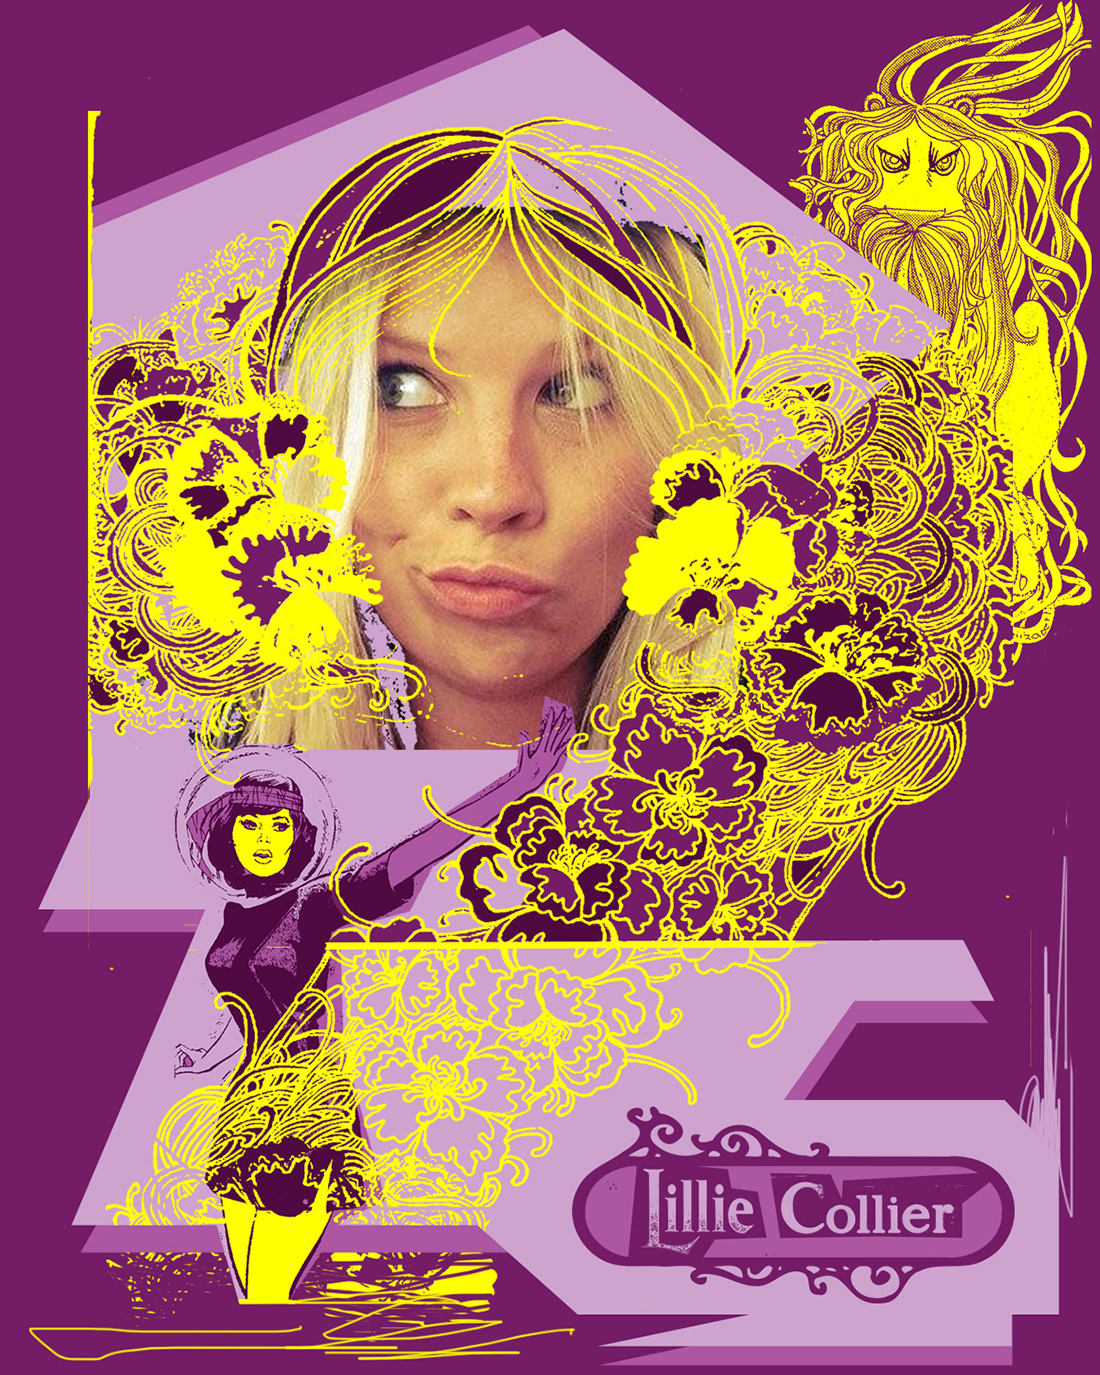 All Made Up Comedy - Lillie Collier - Profile.jpg